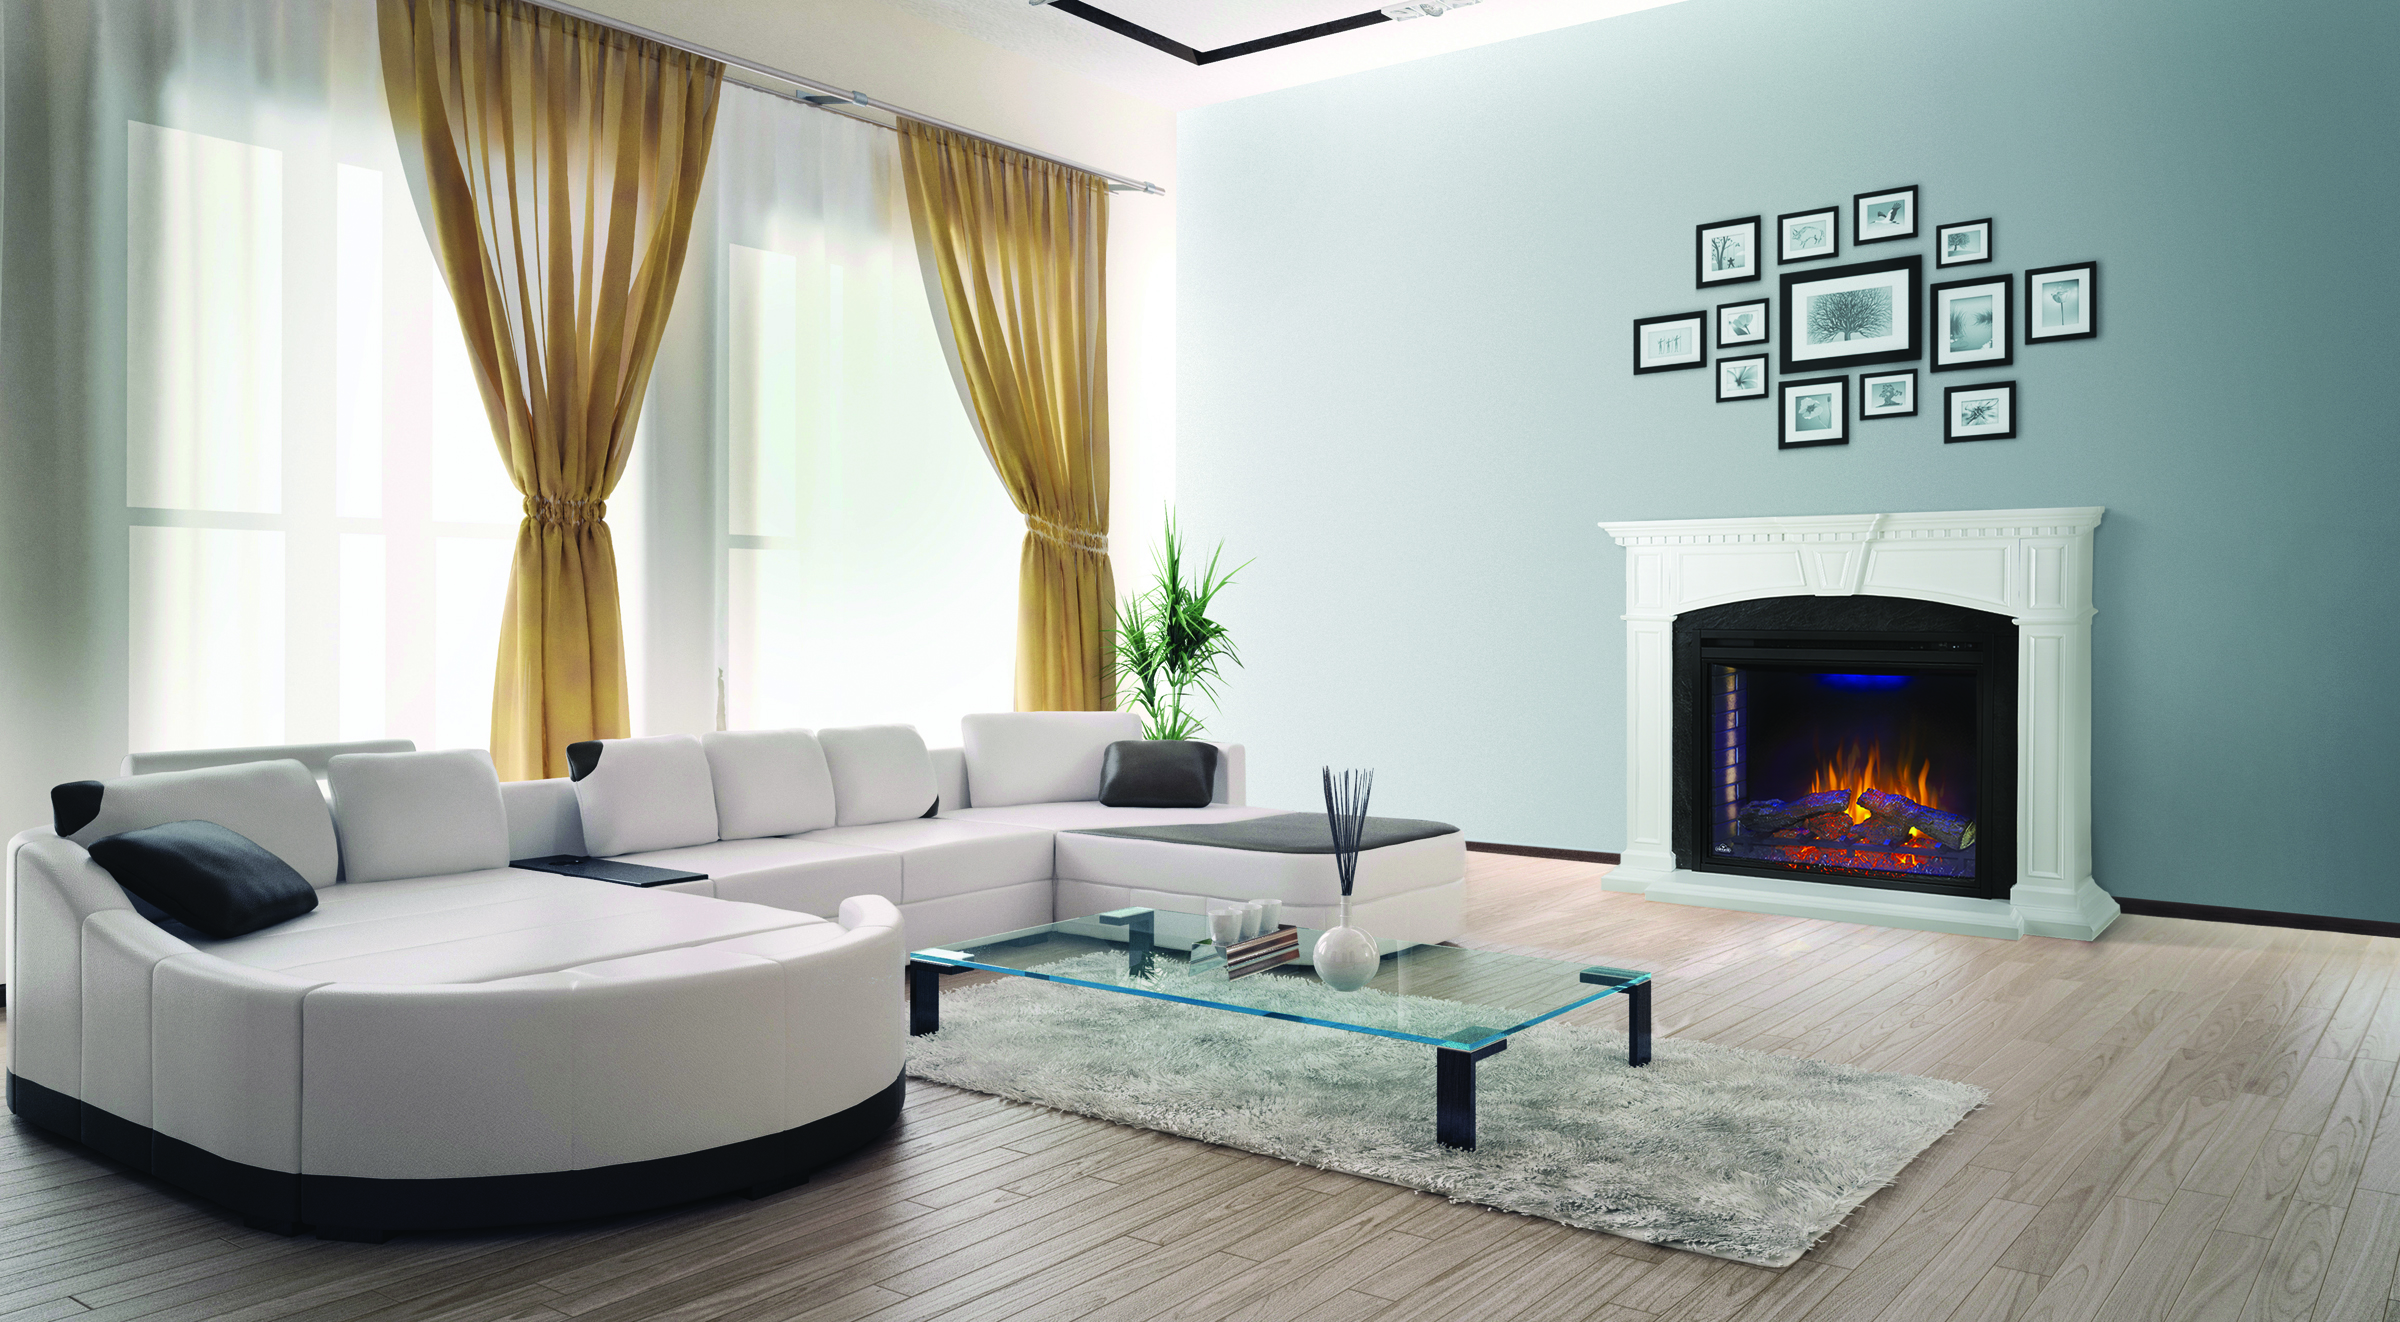 interesting fireplace design contemporary for napolean family napoleons ideas home inserts napoleon decor propane interior your room